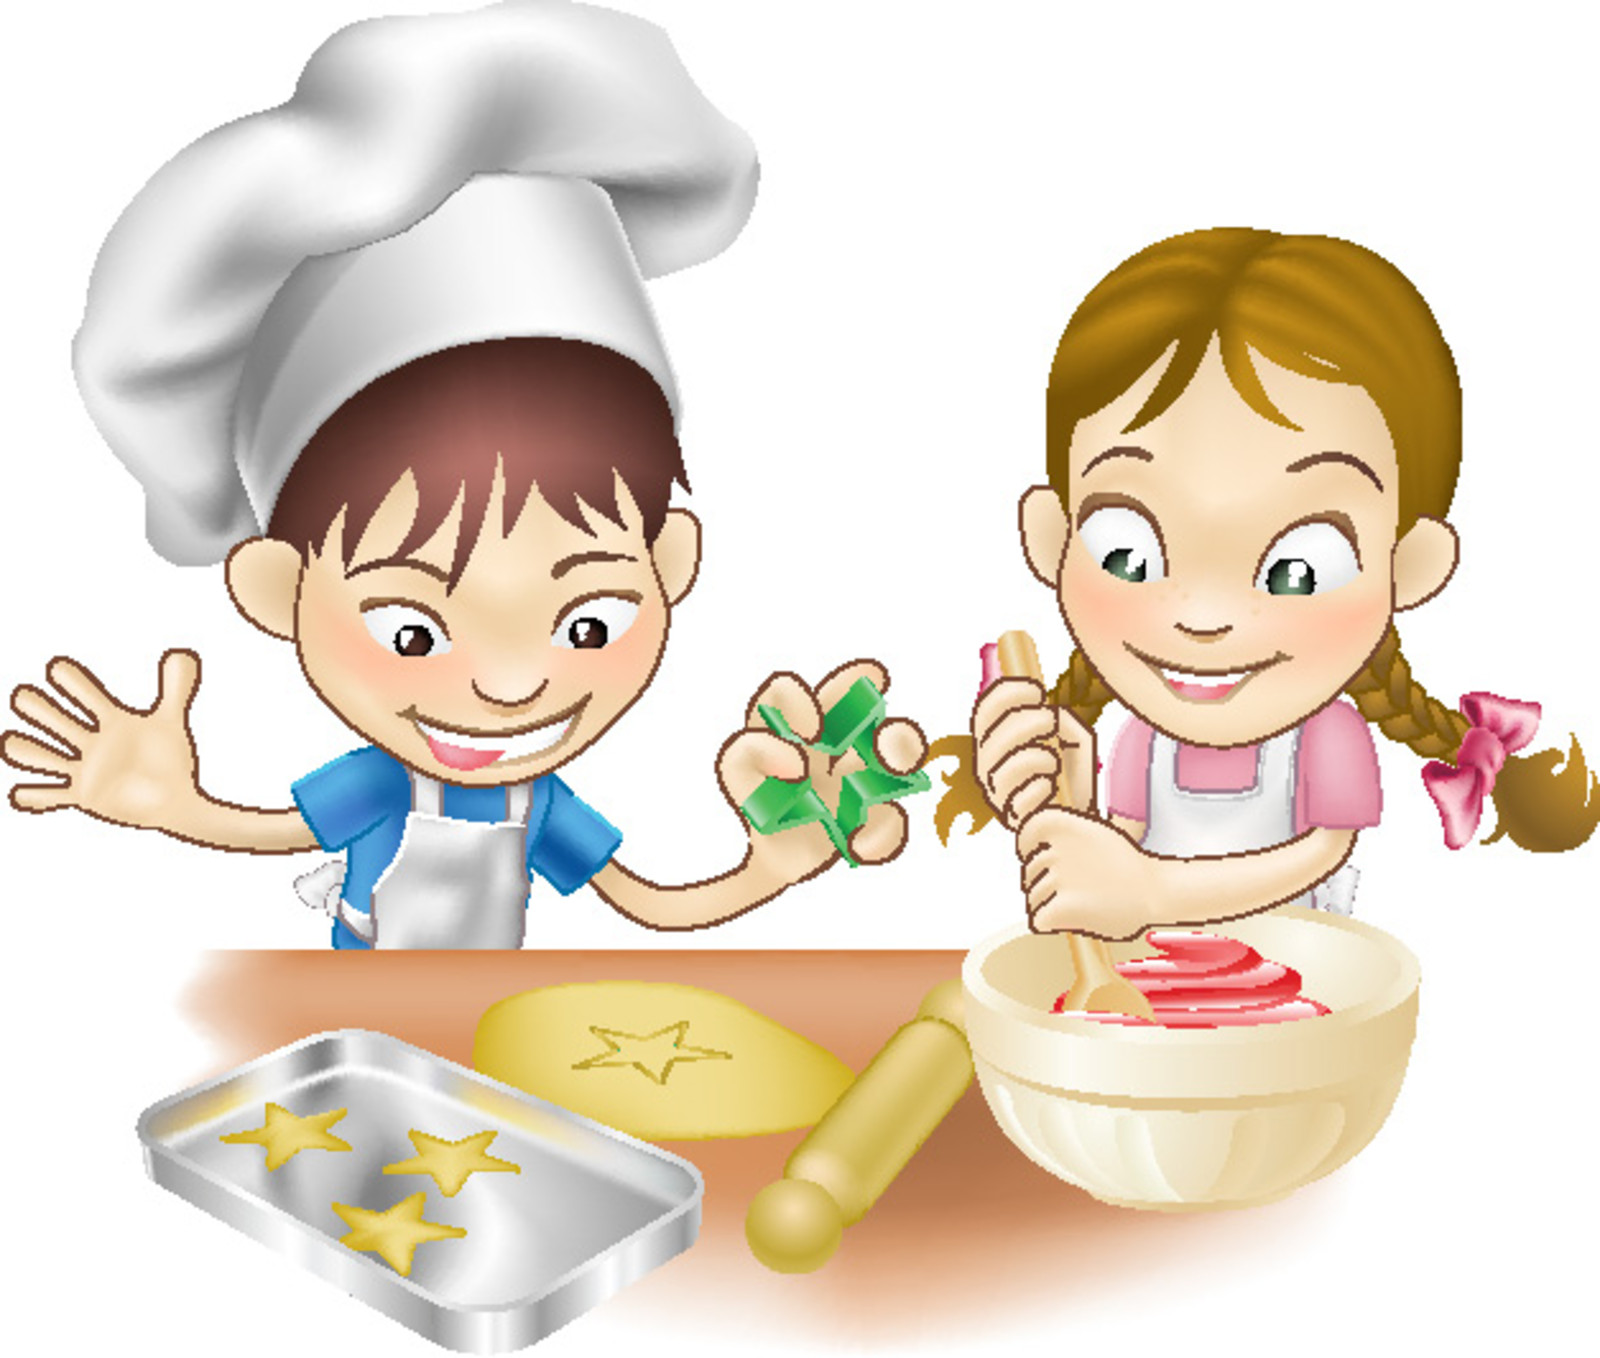 Kitchen clipart small Small cooking children sweet Little